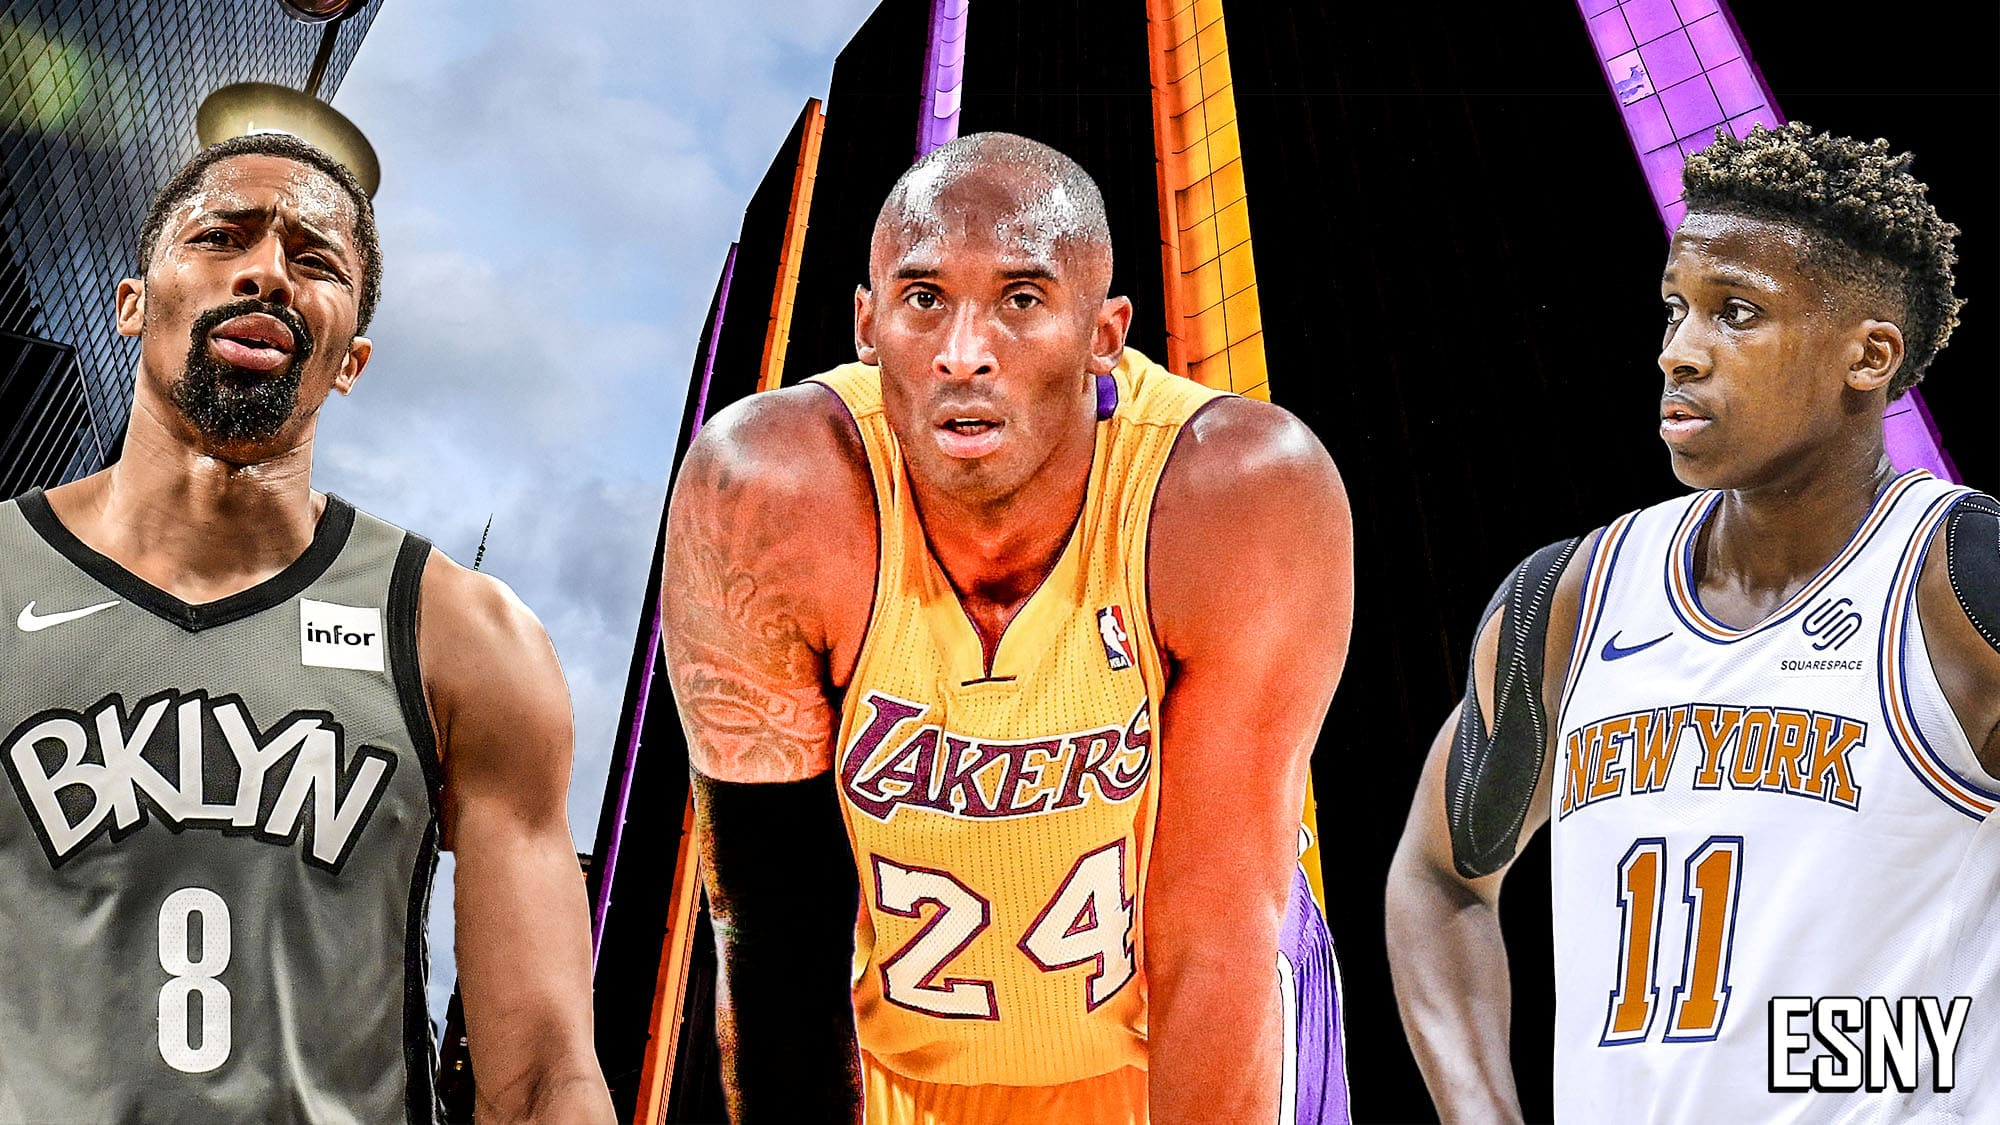 Kobe Bryant 1978 2020 The death of a generations hero 2000x1125